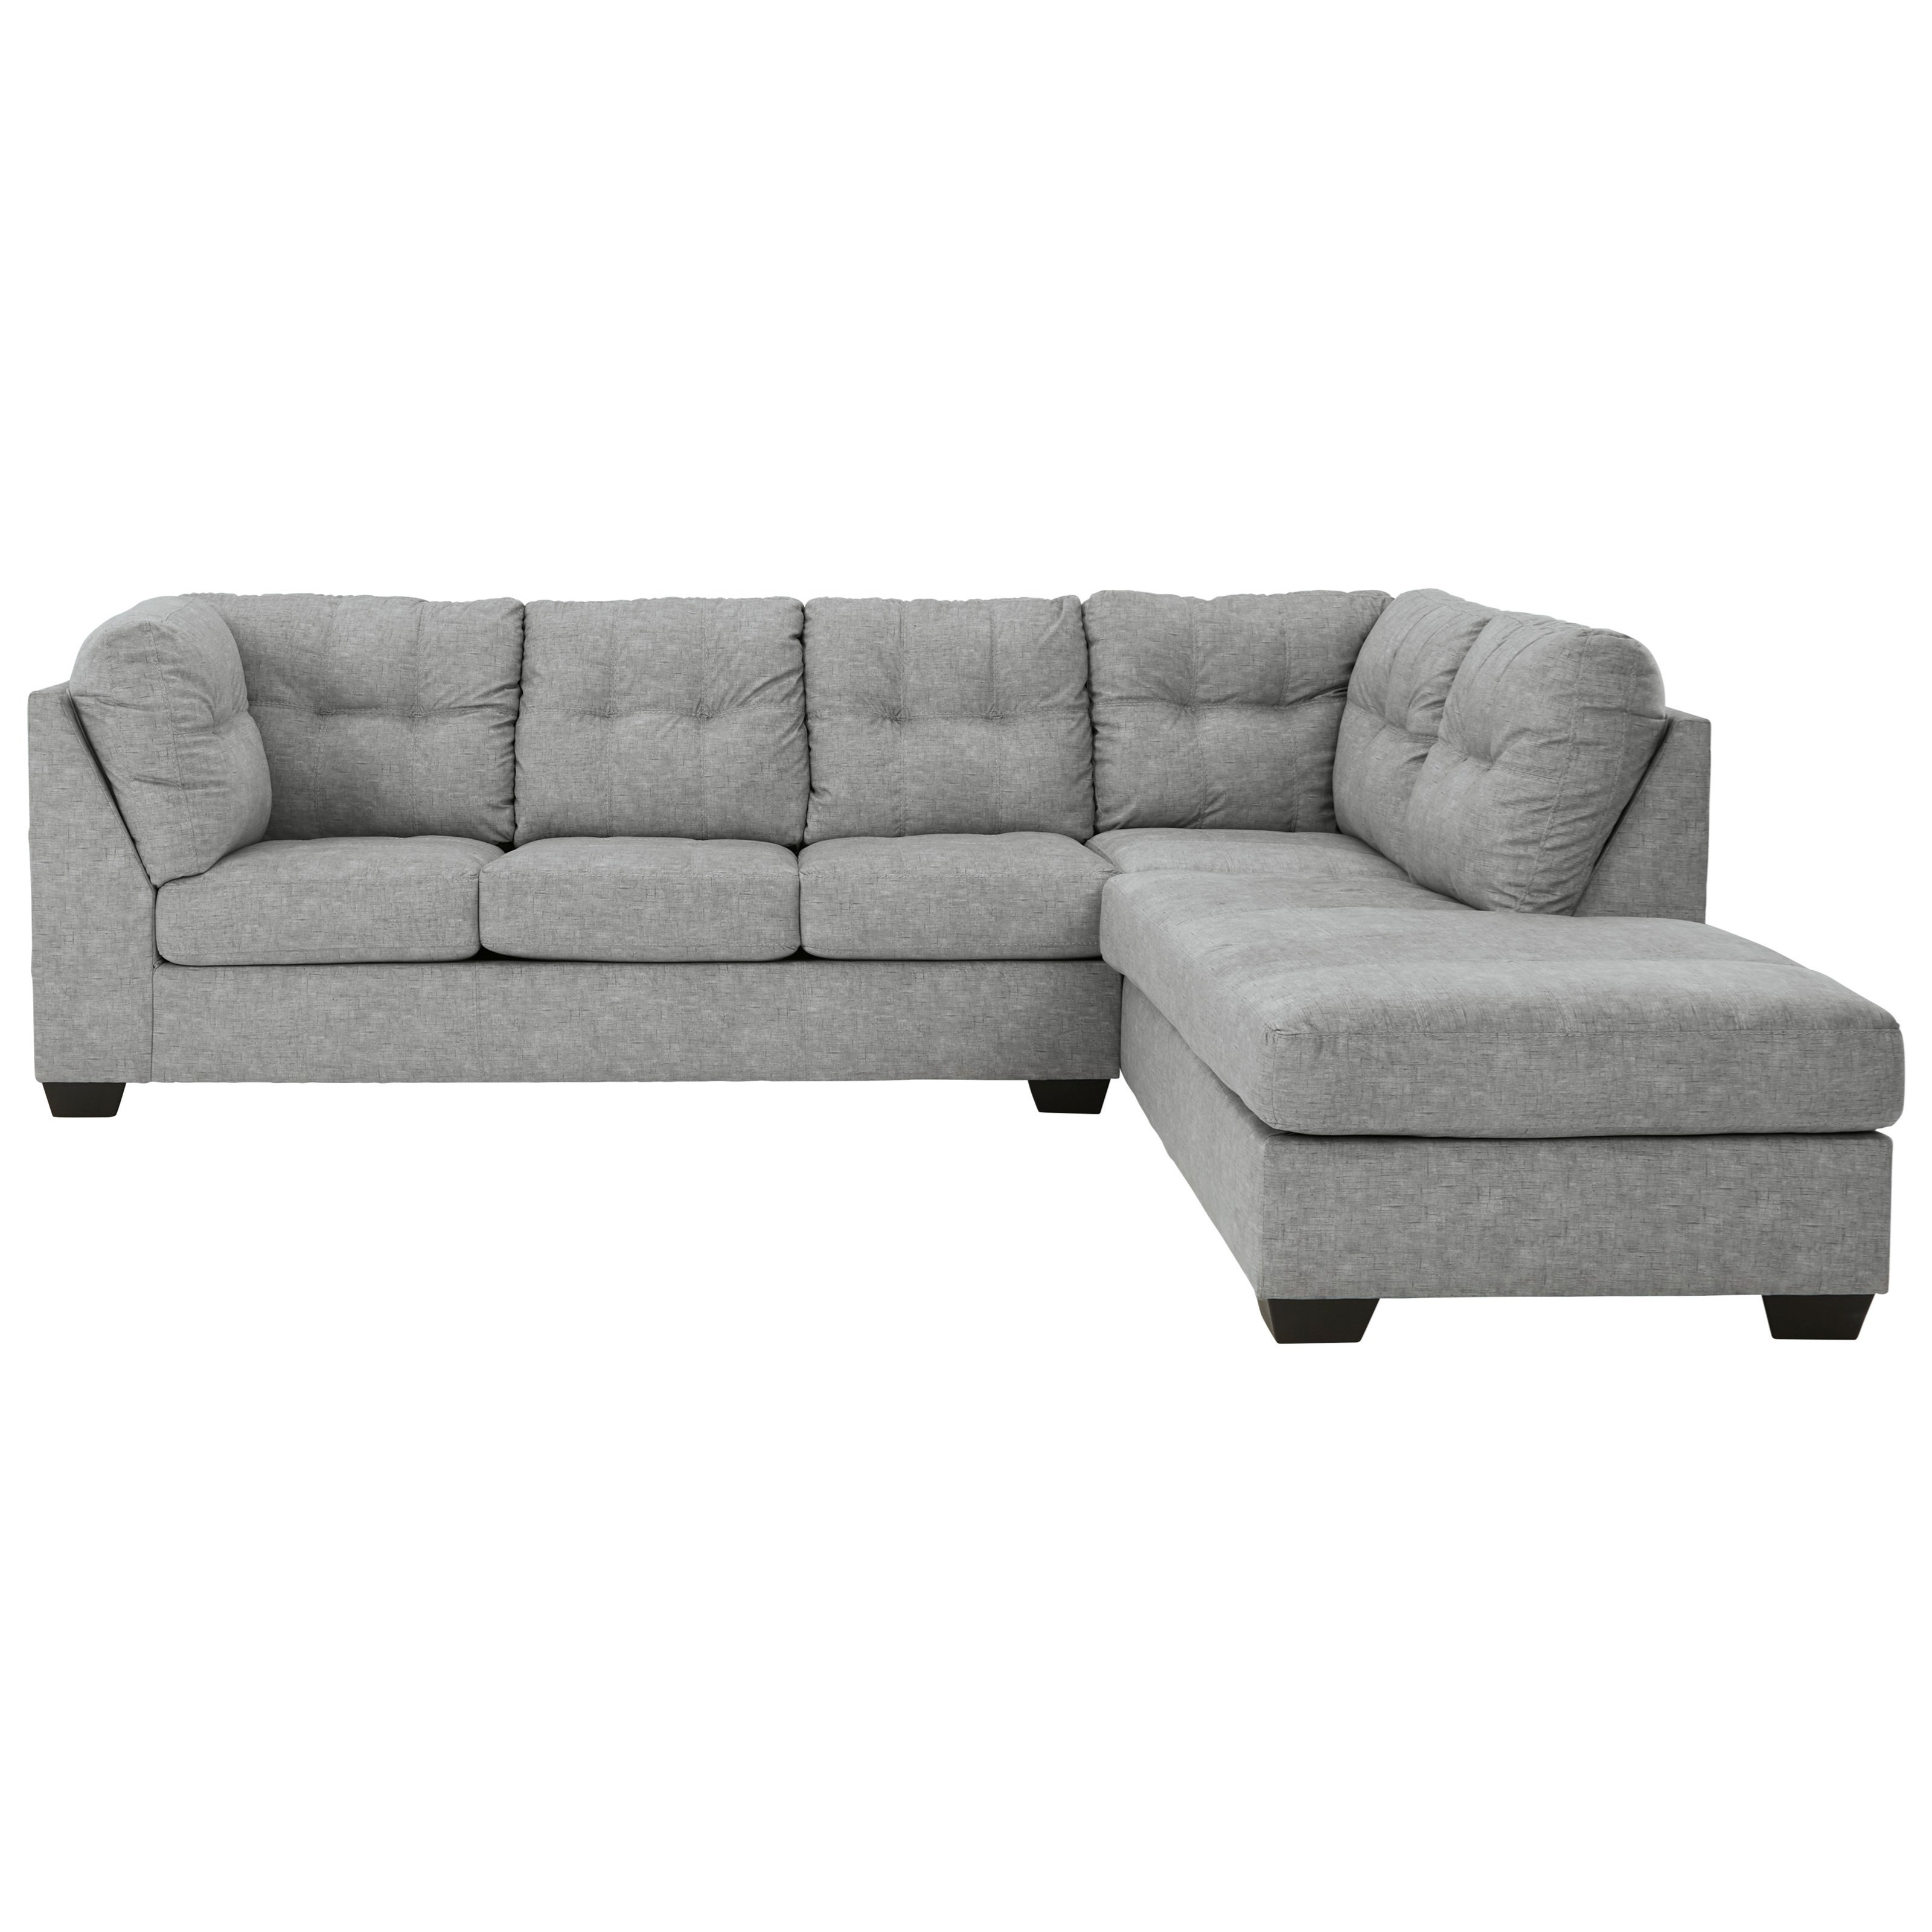 Falkirk 2-Piece Sectional with Chaise by Benchcraft at Value City Furniture